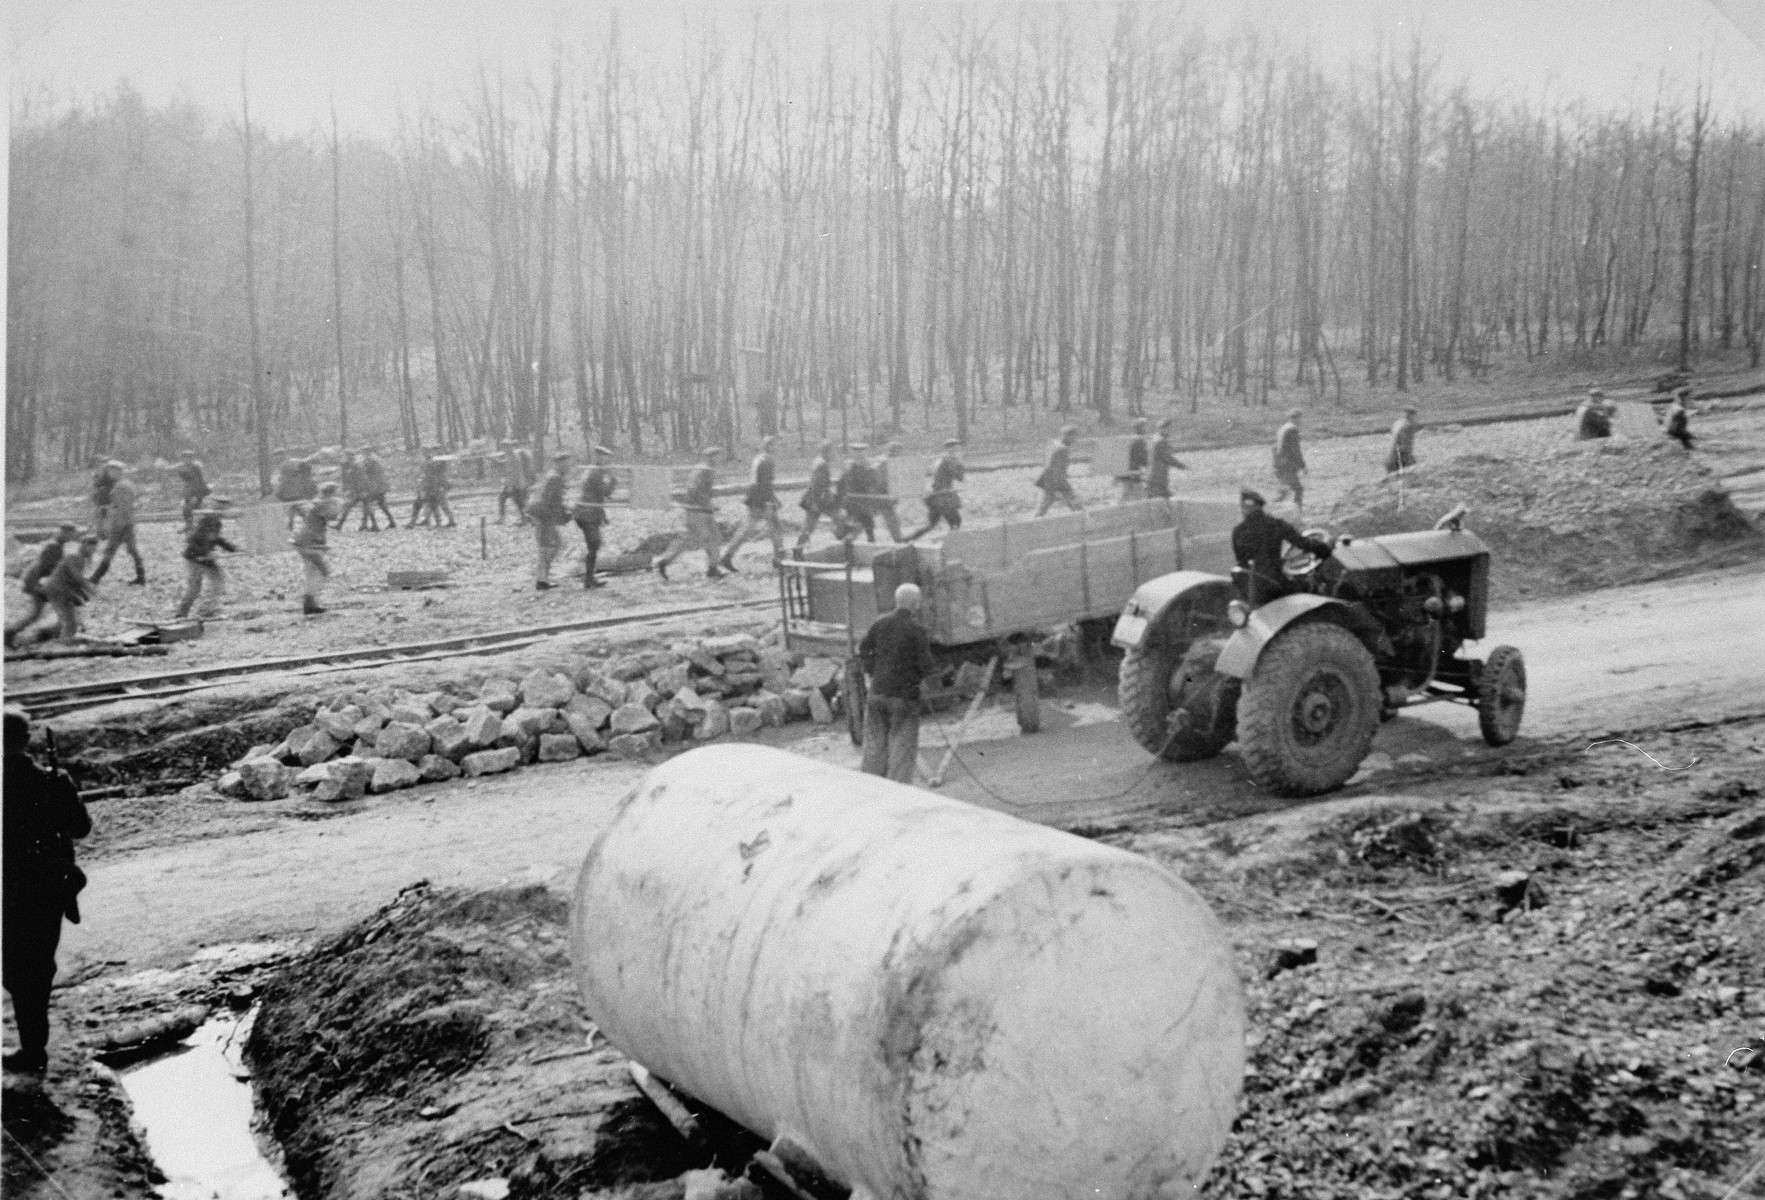 Buchenwald prisoners at forced labor doing road construction.